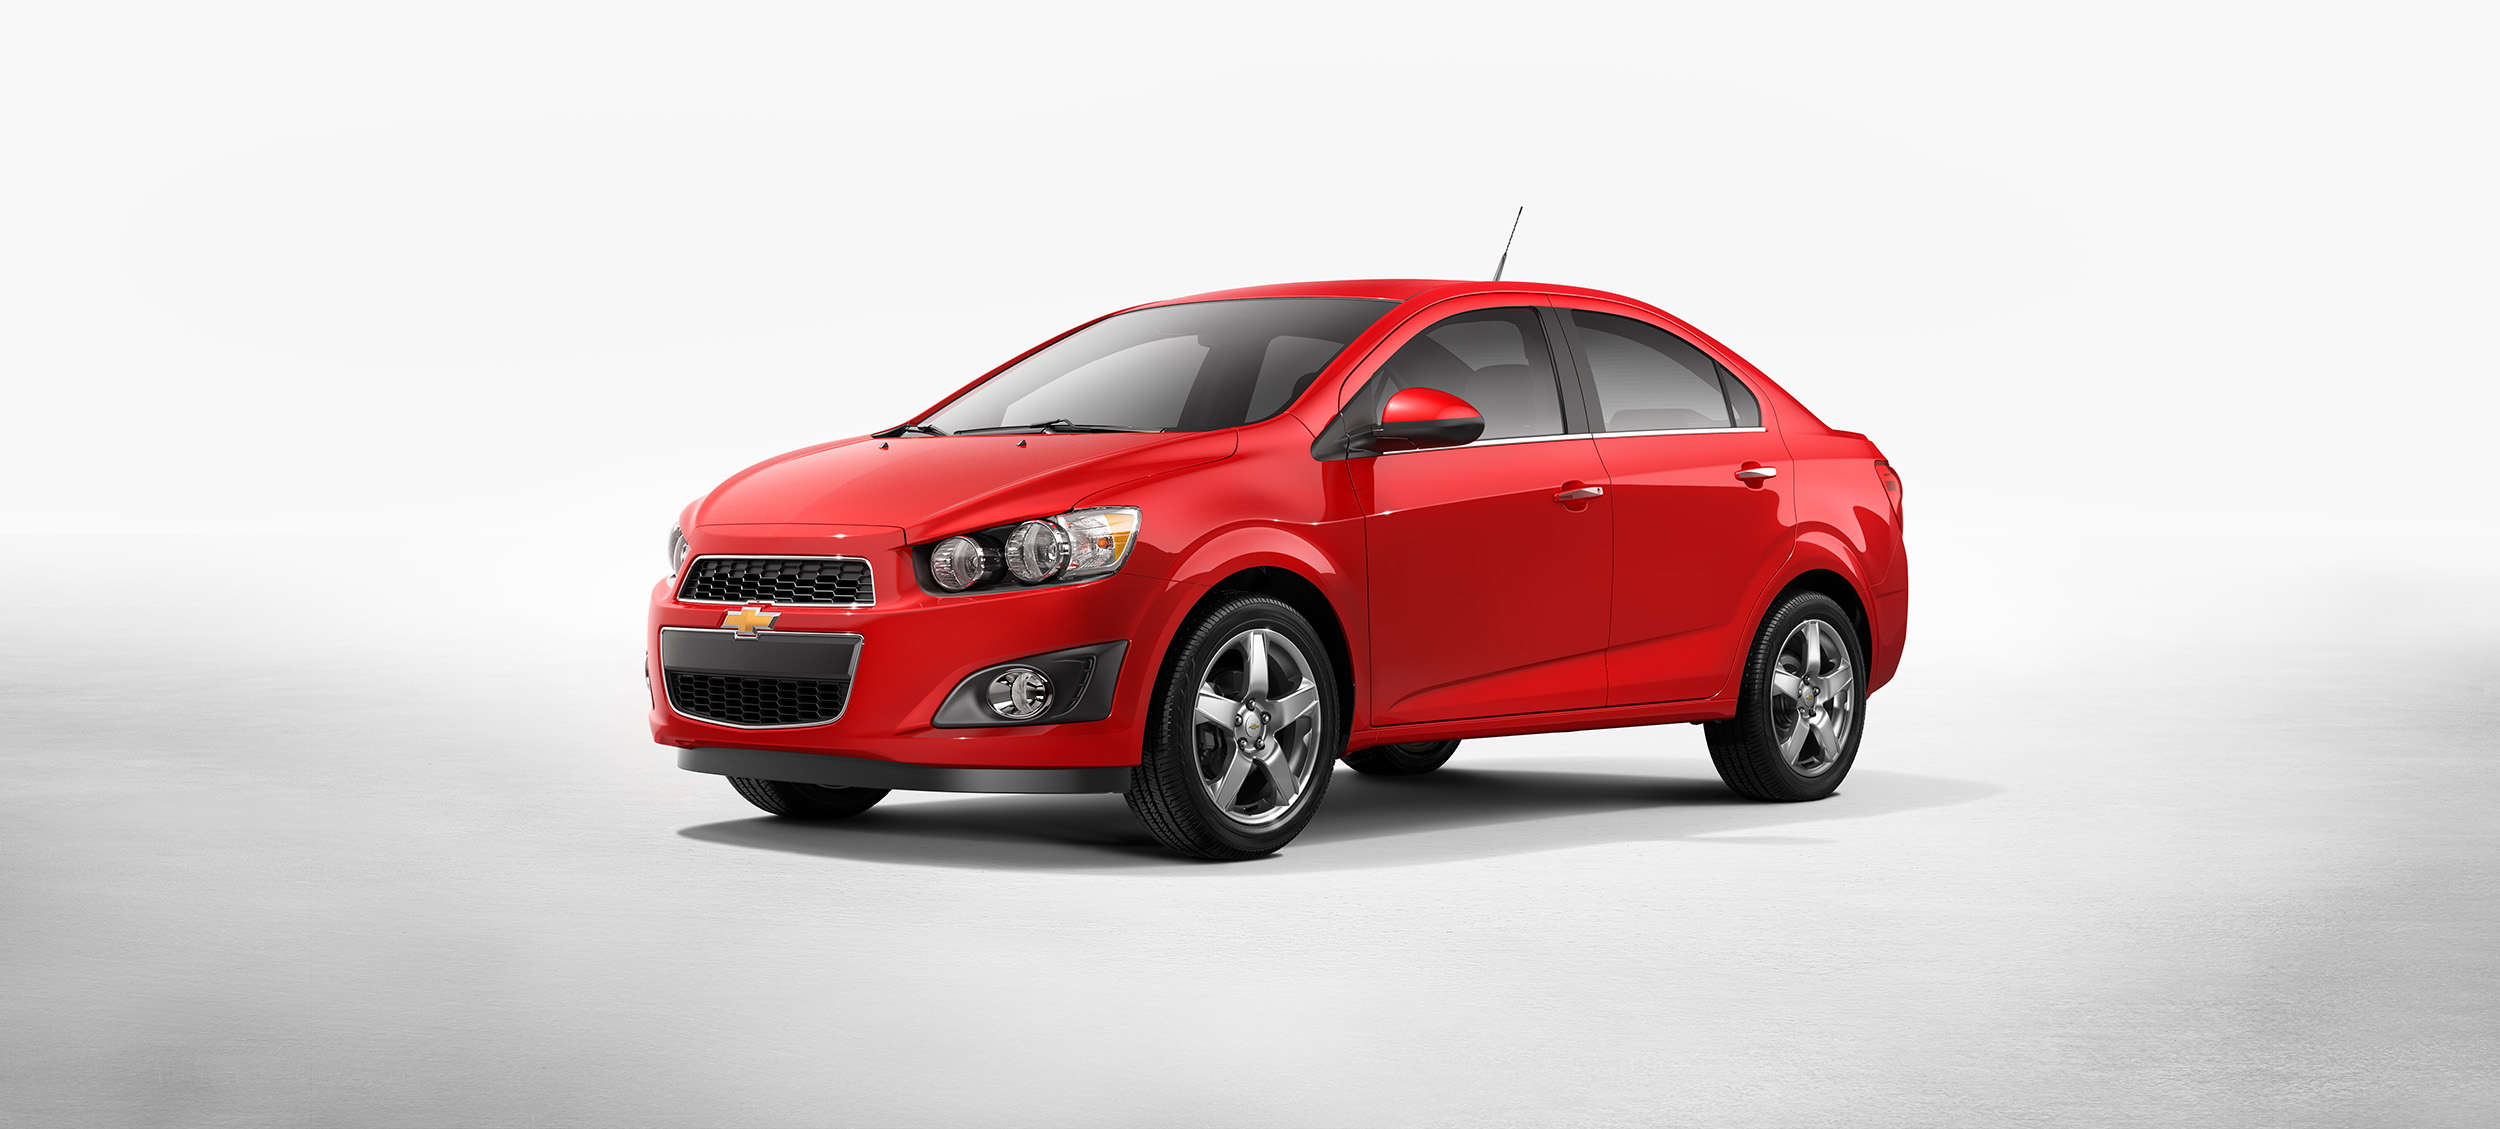 Chevrolet Sonic Repair Manual: Tire and Wheel Runout Specifications